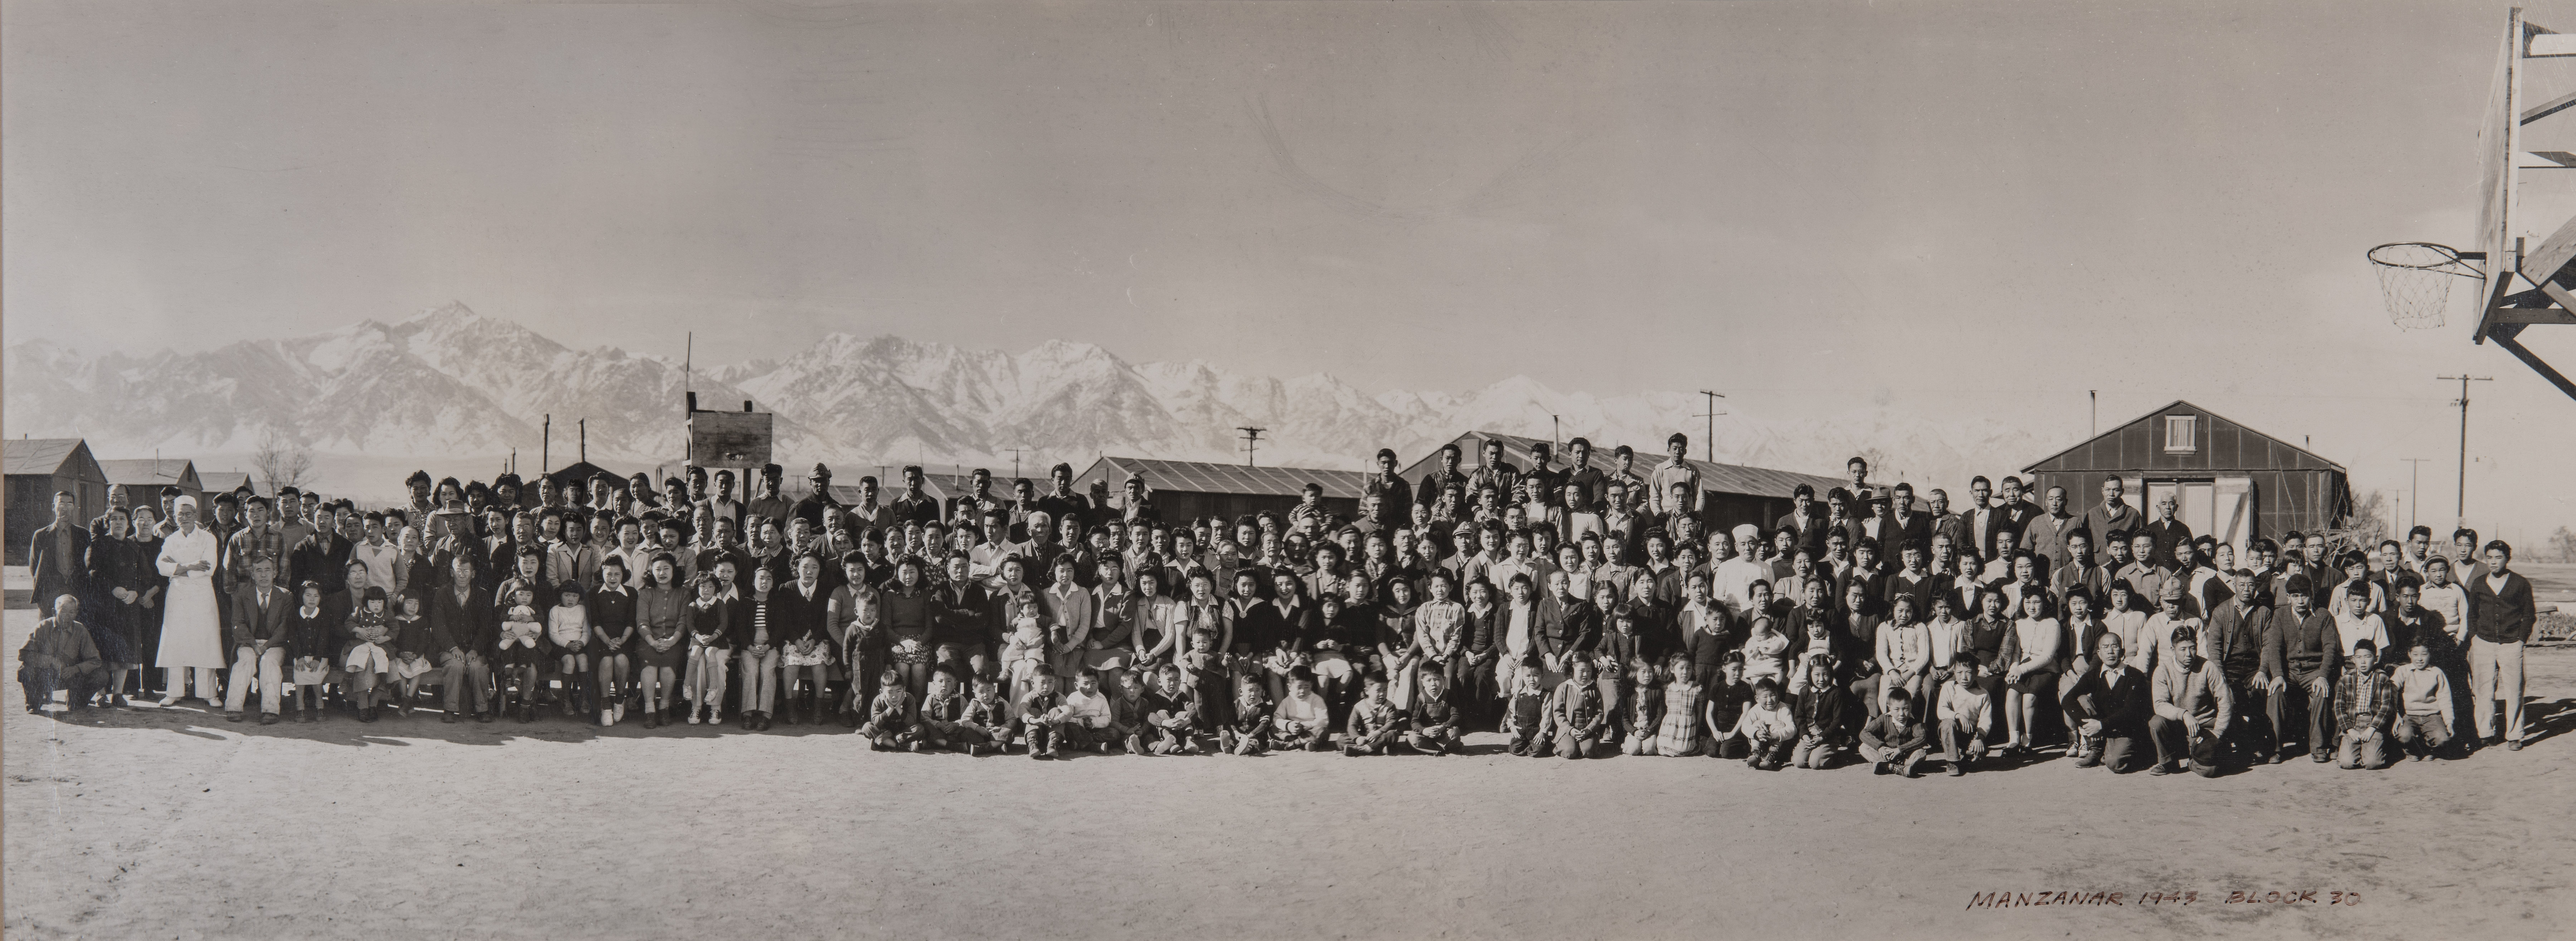 Group photo from Manzanar War Relocation Center.  Young Matsumoto is almost dead center with his family behind him. Photo courtesy Bob Matsumoto.